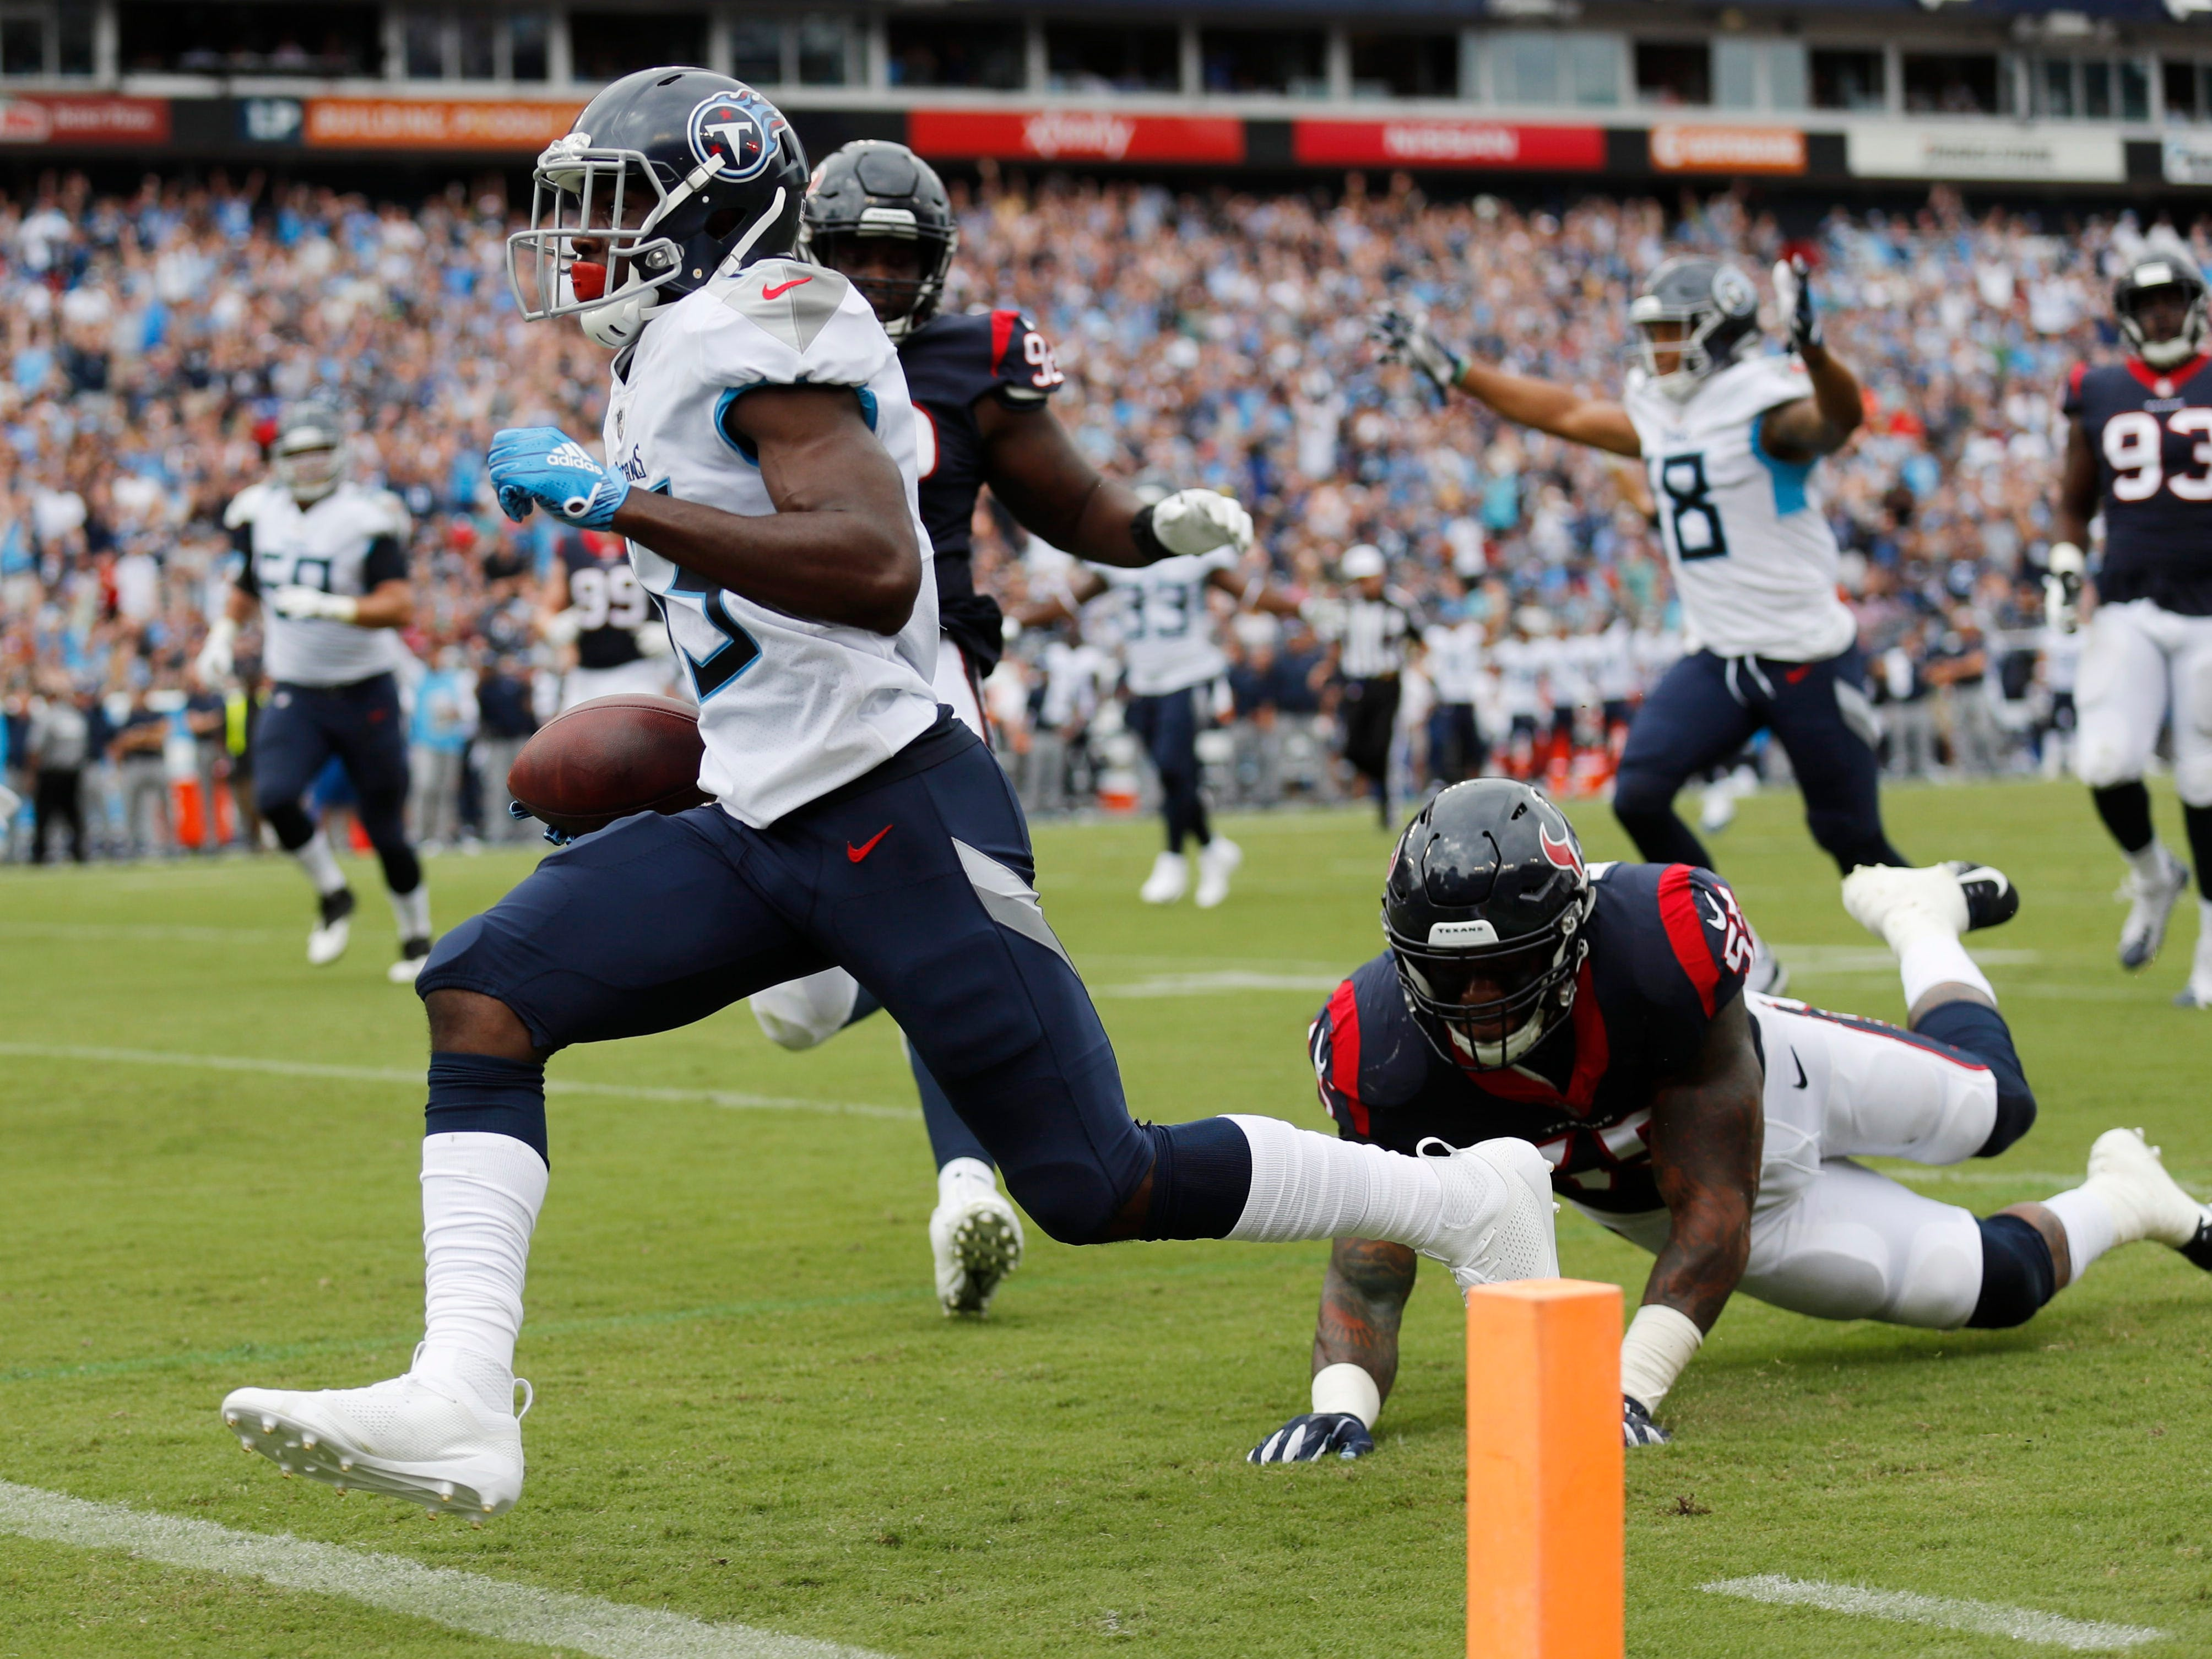 Titans wide receiver Taywan Taylor (13) scores the team's second touchdown in the first half at Nissan Stadium Sunday, Sept. 16, 2018, in Nashville, Tenn.